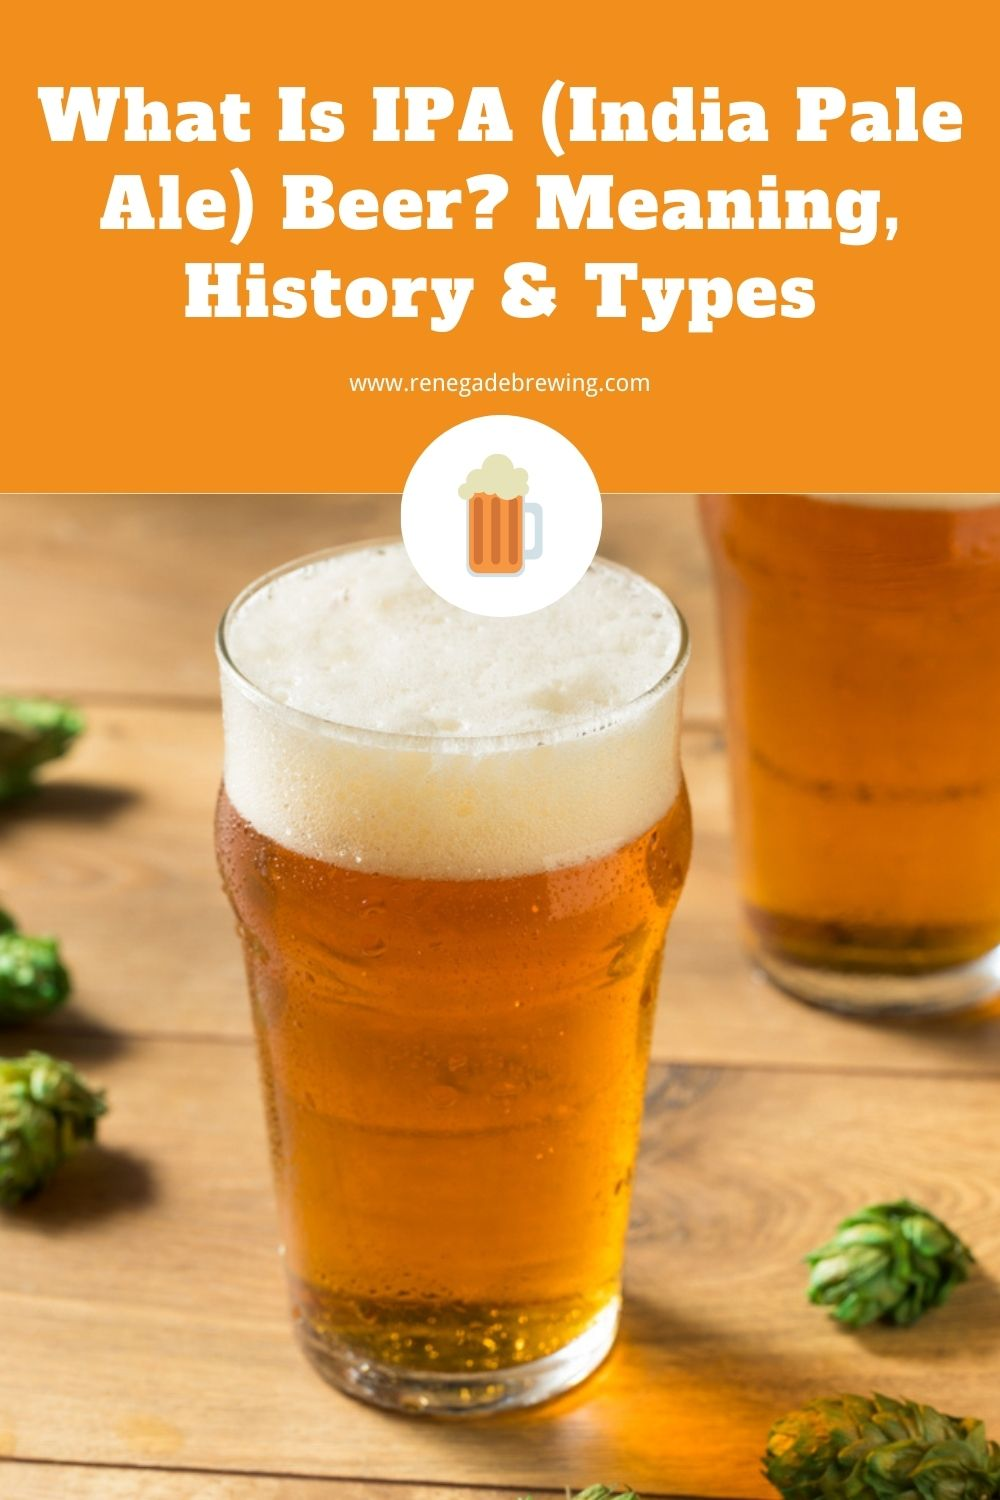 What Is IPA (India Pale Ale) Beer Meaning, History & Types 1